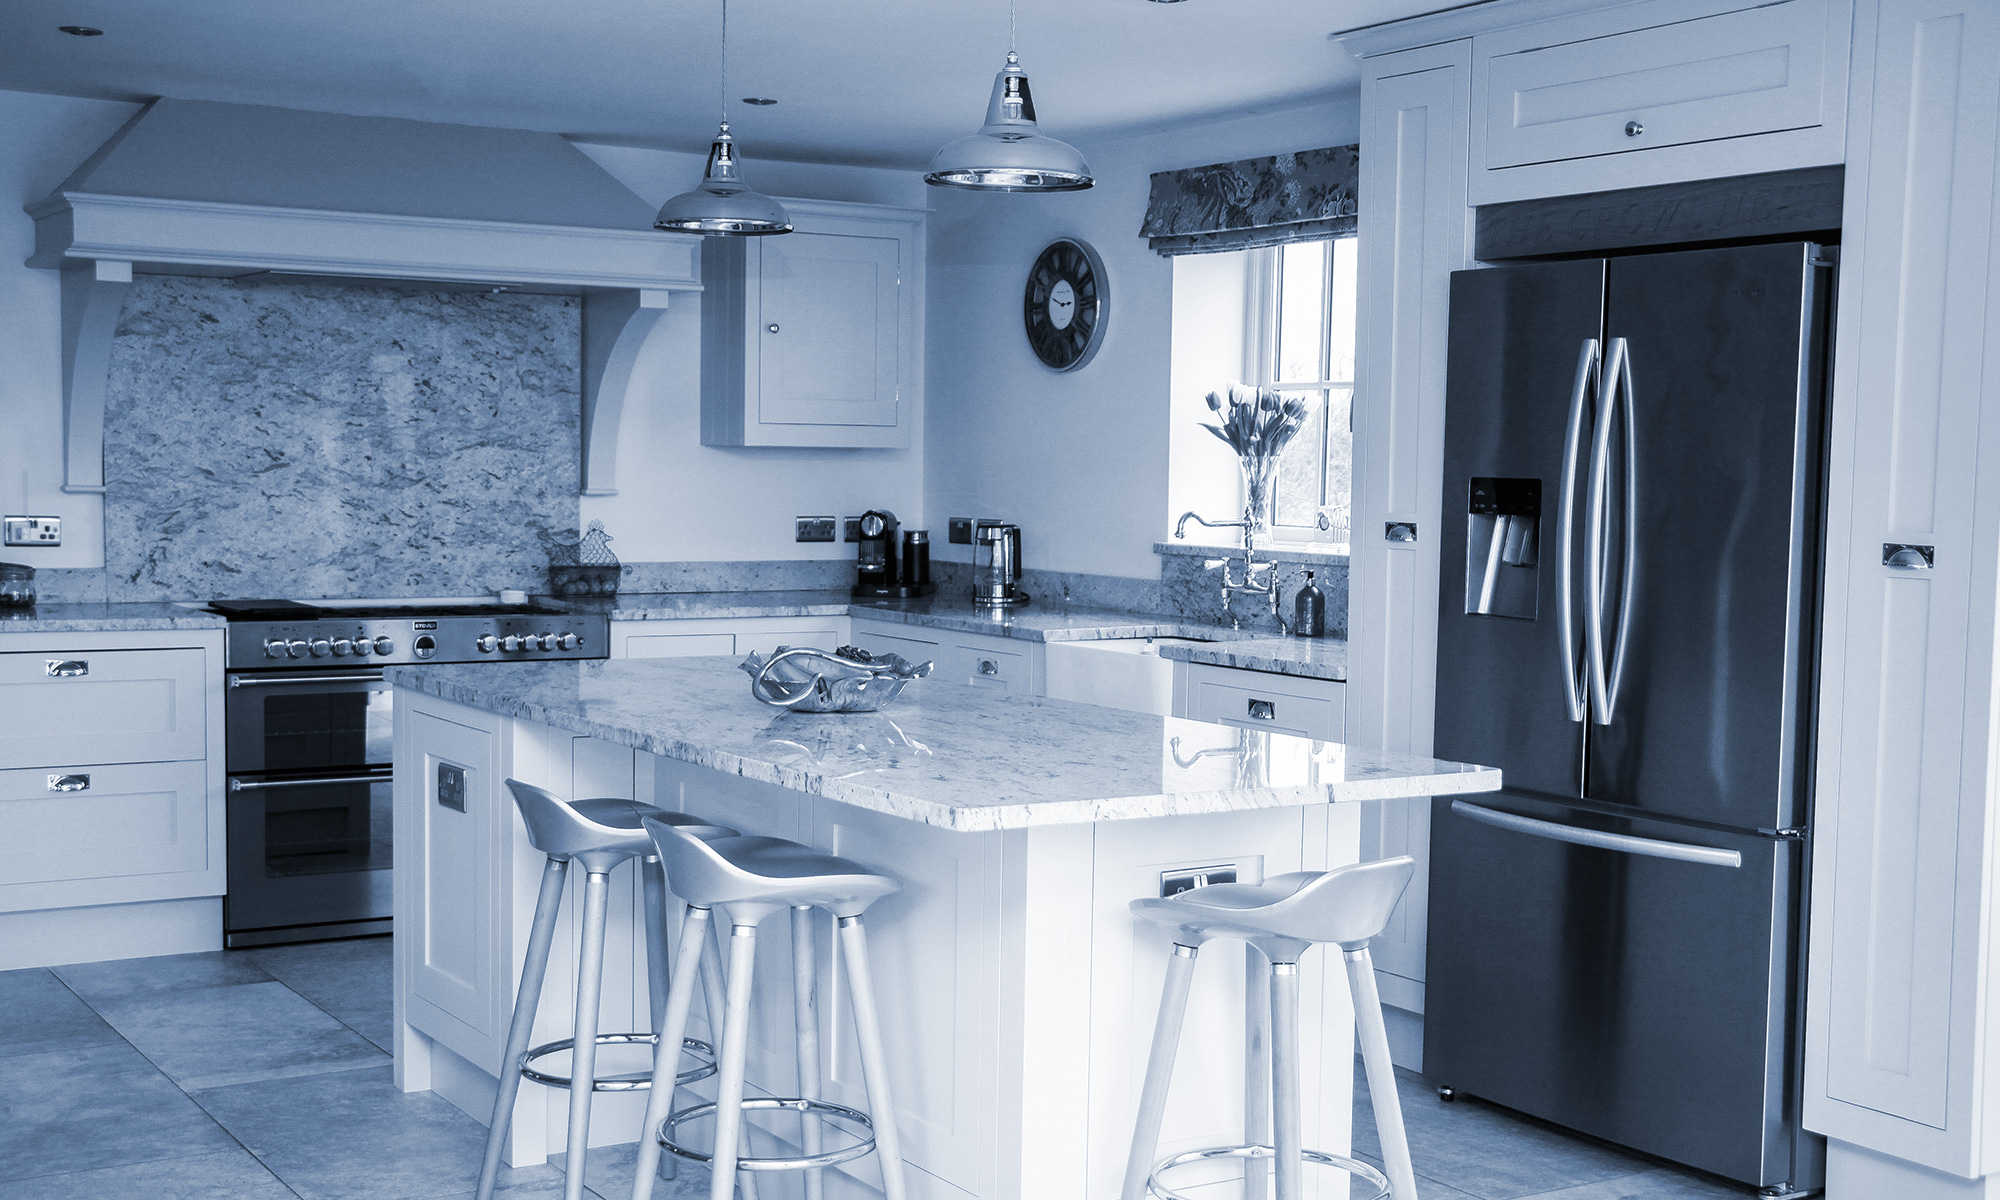 bespoke kitchen design service